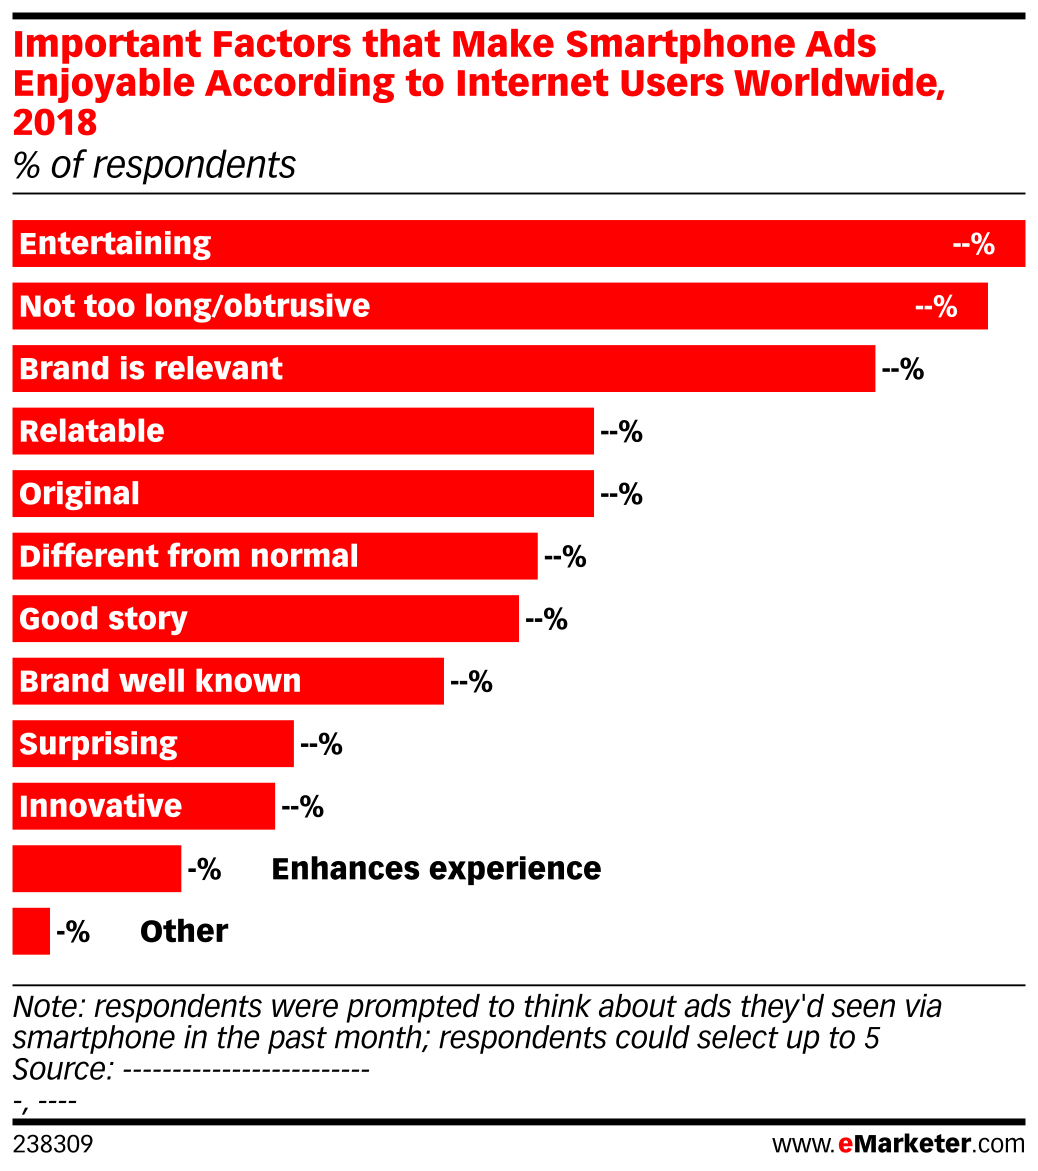 Important Factors that Make Smartphone Ads Enjoyable According to Internet Users Worldwide, 2018 (% of respondents)